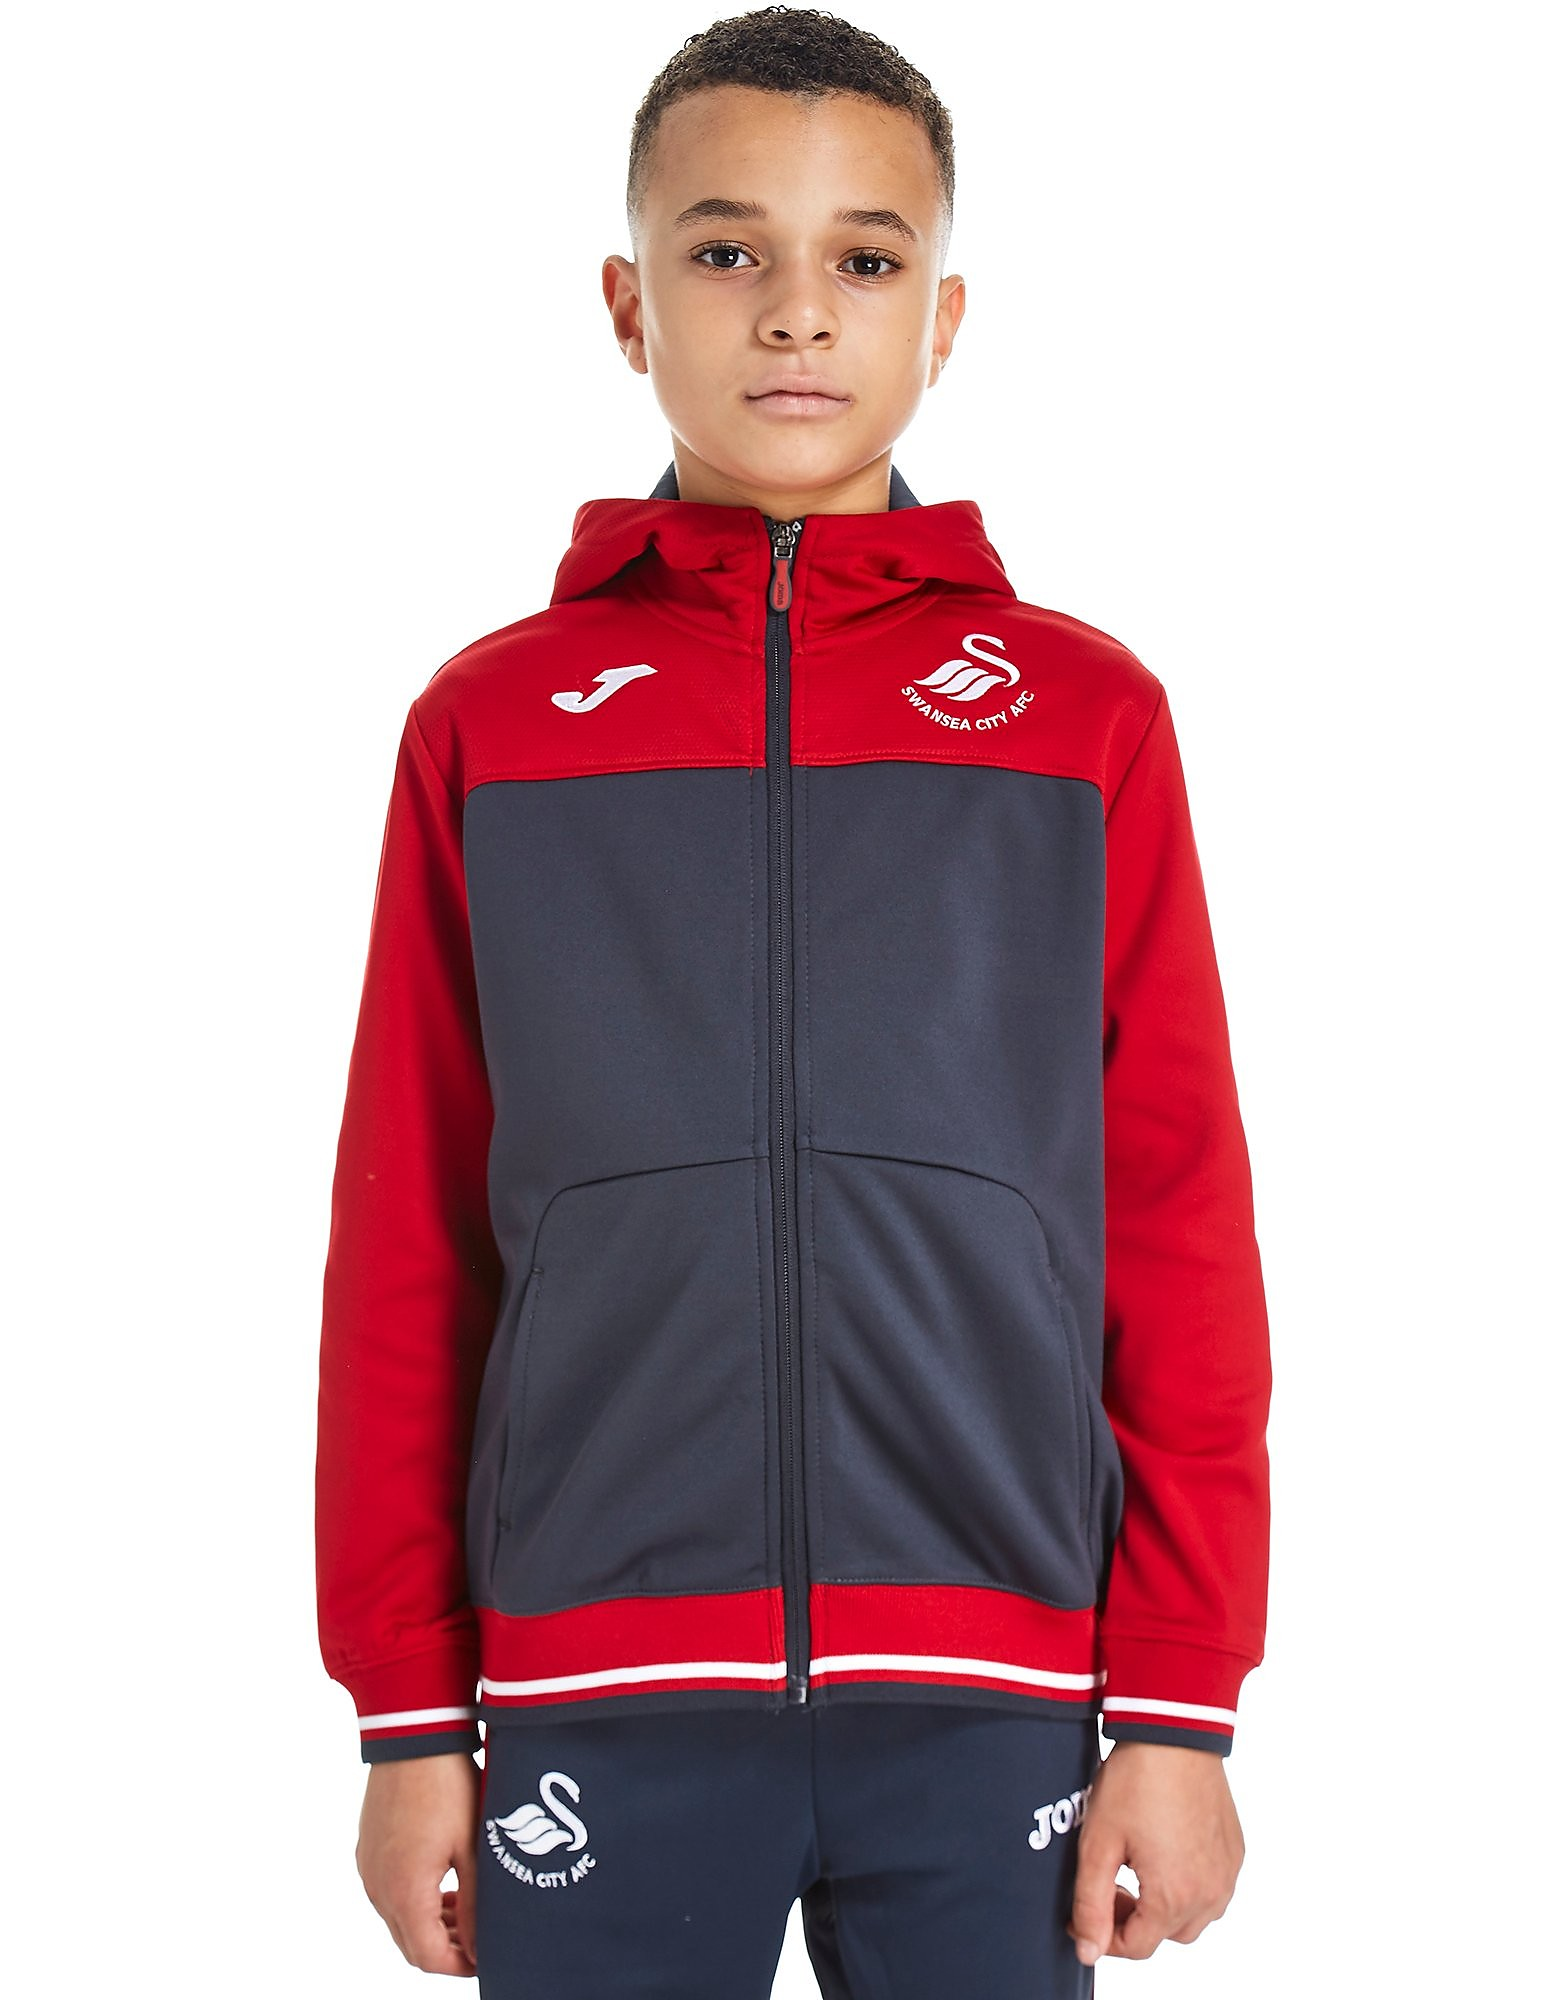 Joma Swansea City FC Training Hoody Junior